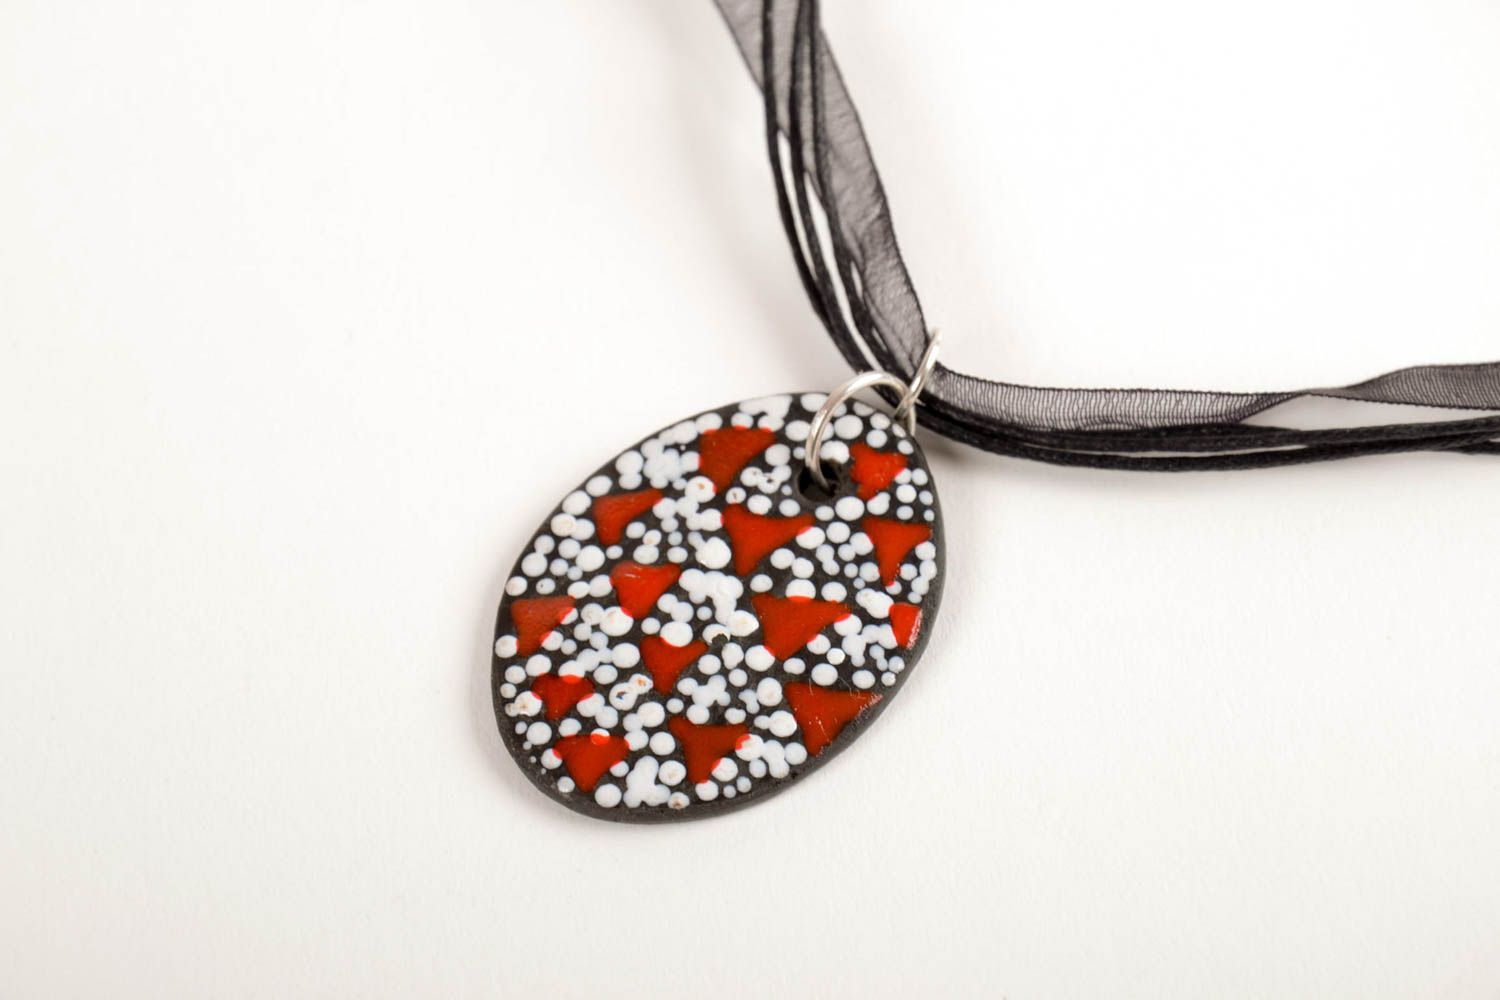 Handmade beautiful pendant unusual ceramic pendant elegant natural jewelry photo 4